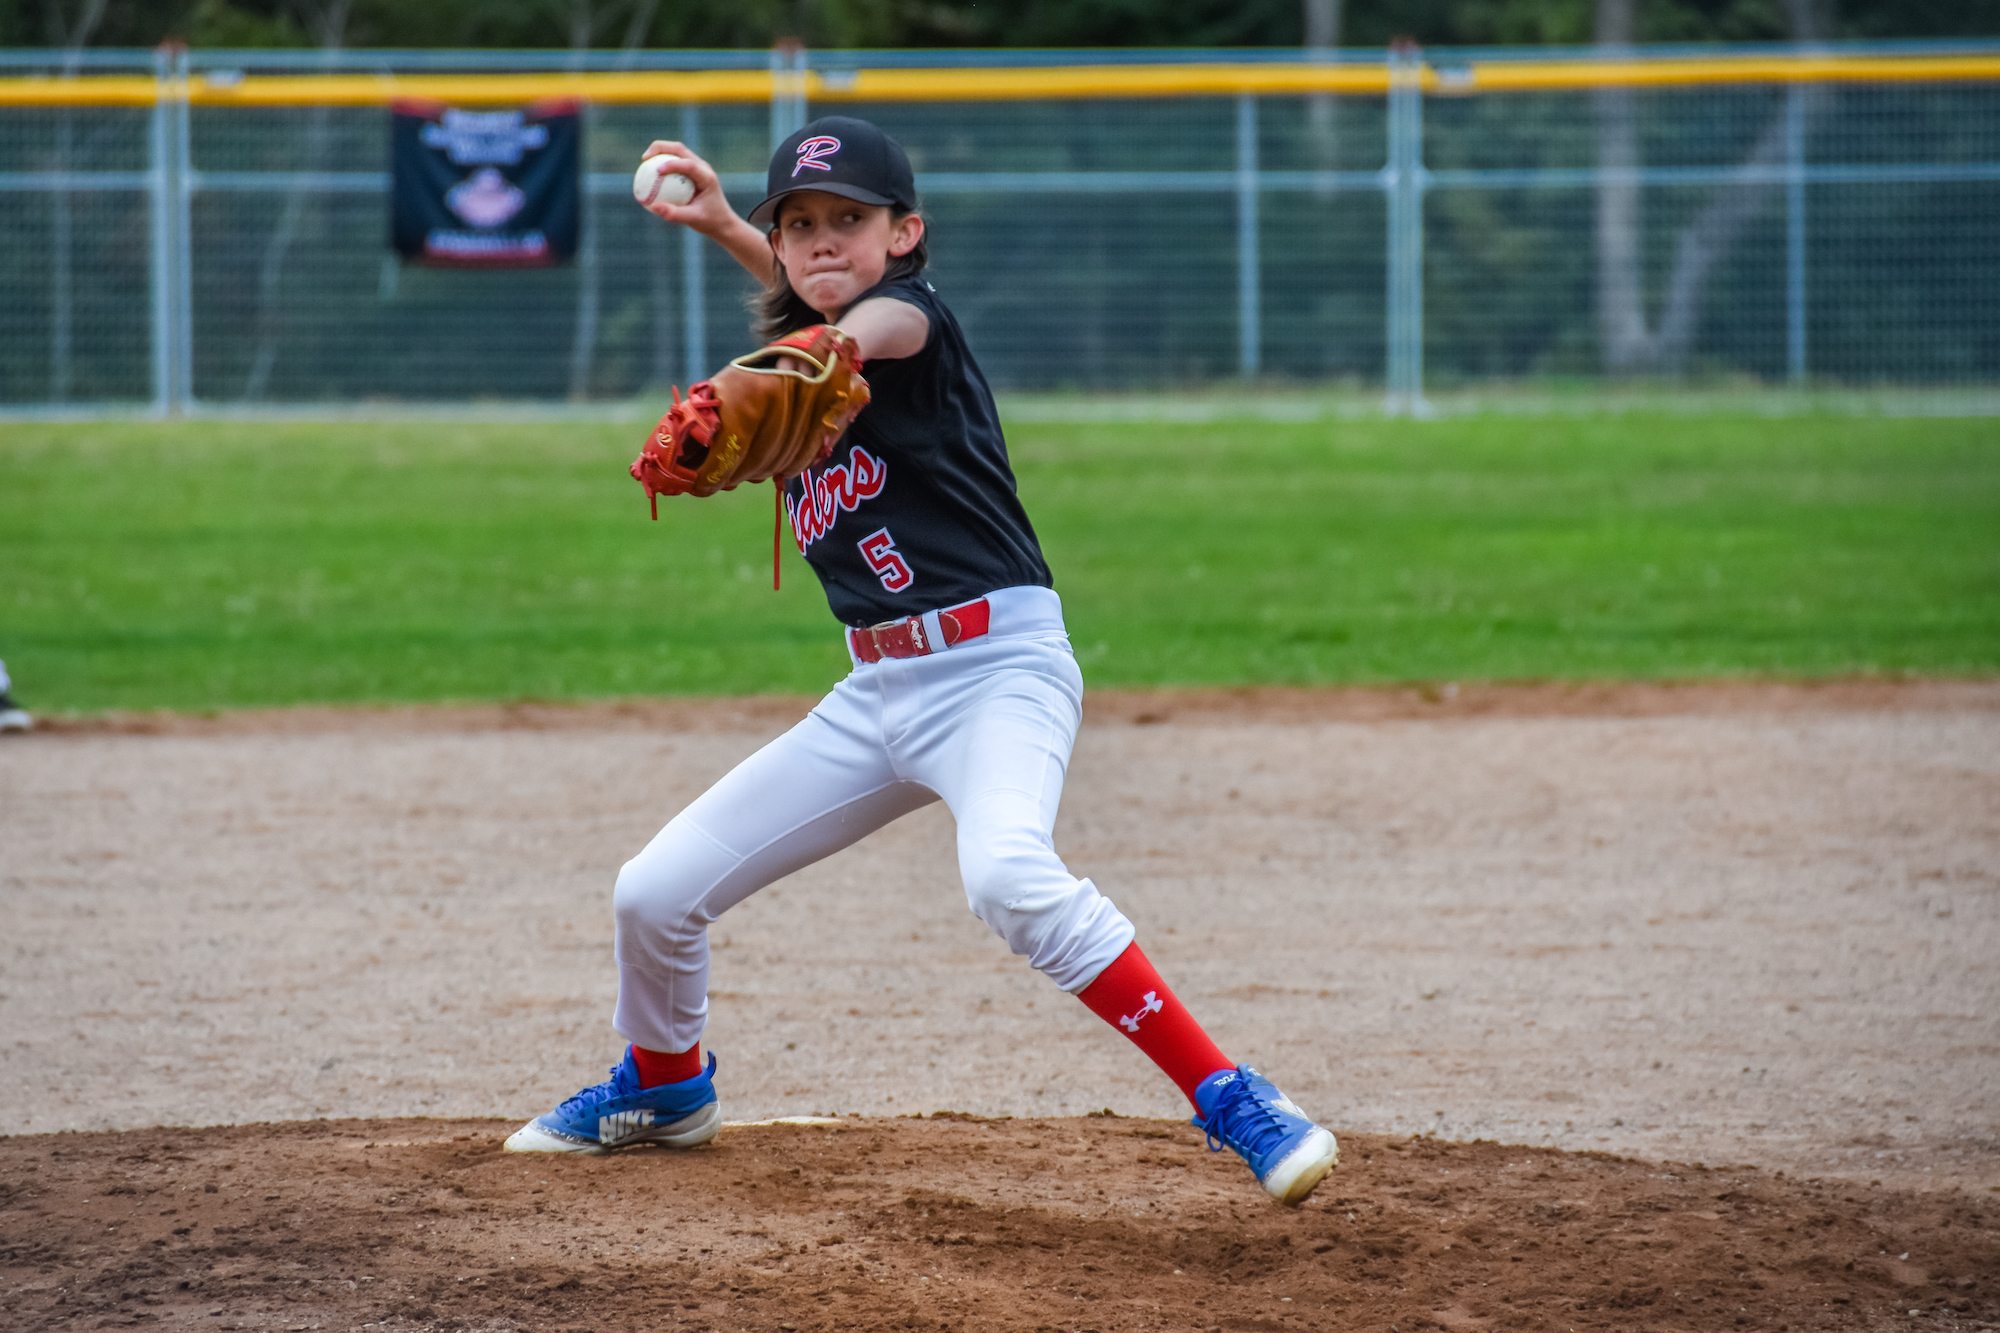 National Championships: 13U National Atlantic begins in Dartmouth